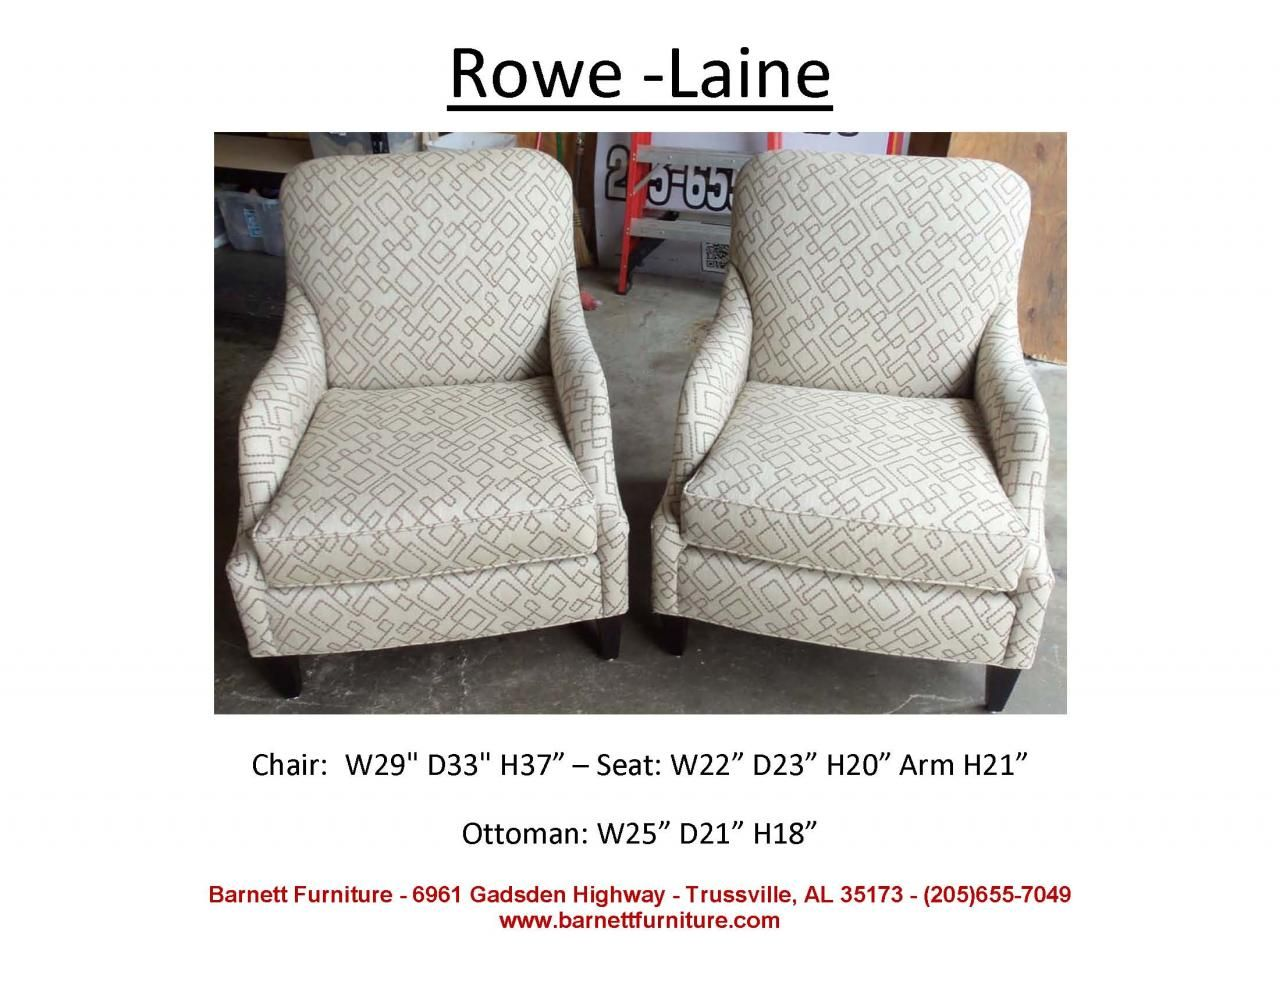 Barnett Furniture Chairs Slipcovers For Chairs Chair